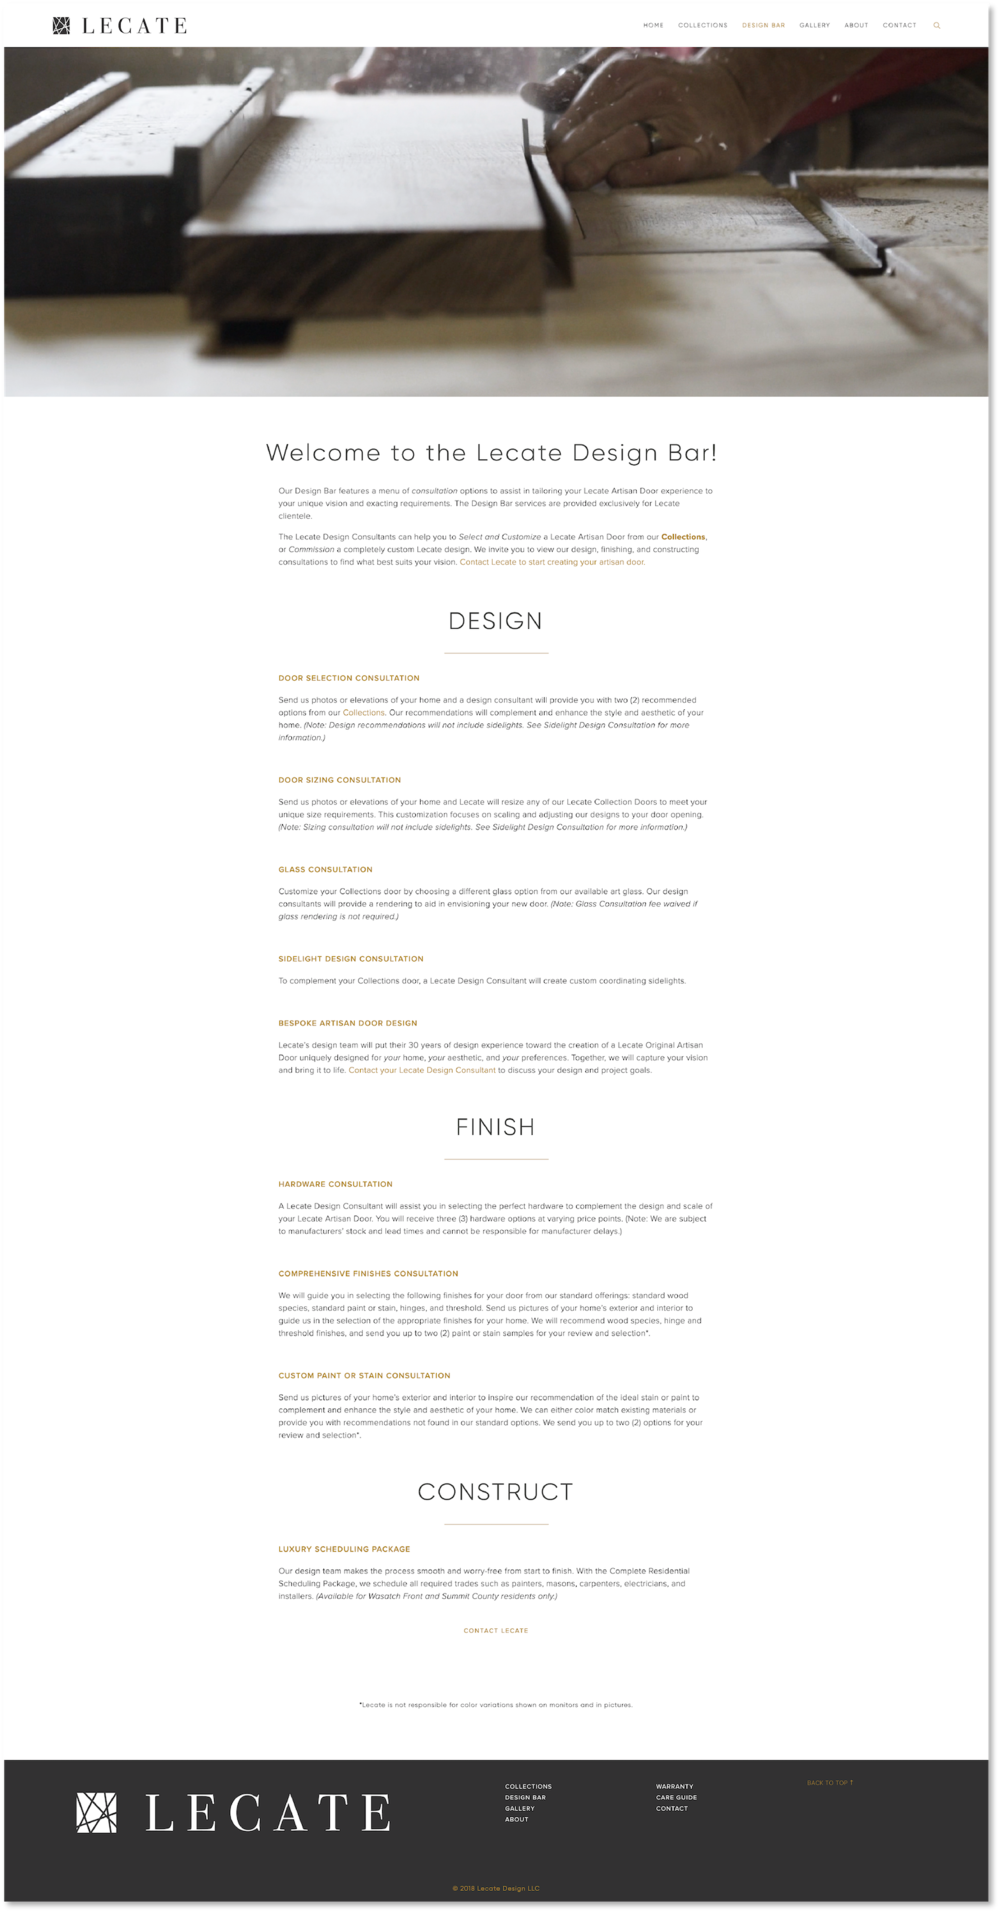 Lecate-Design-Bar-Page-Design-Website-Squarespace-Artisan-Doors-Salt-Lake-City-Treadaway-Design.png